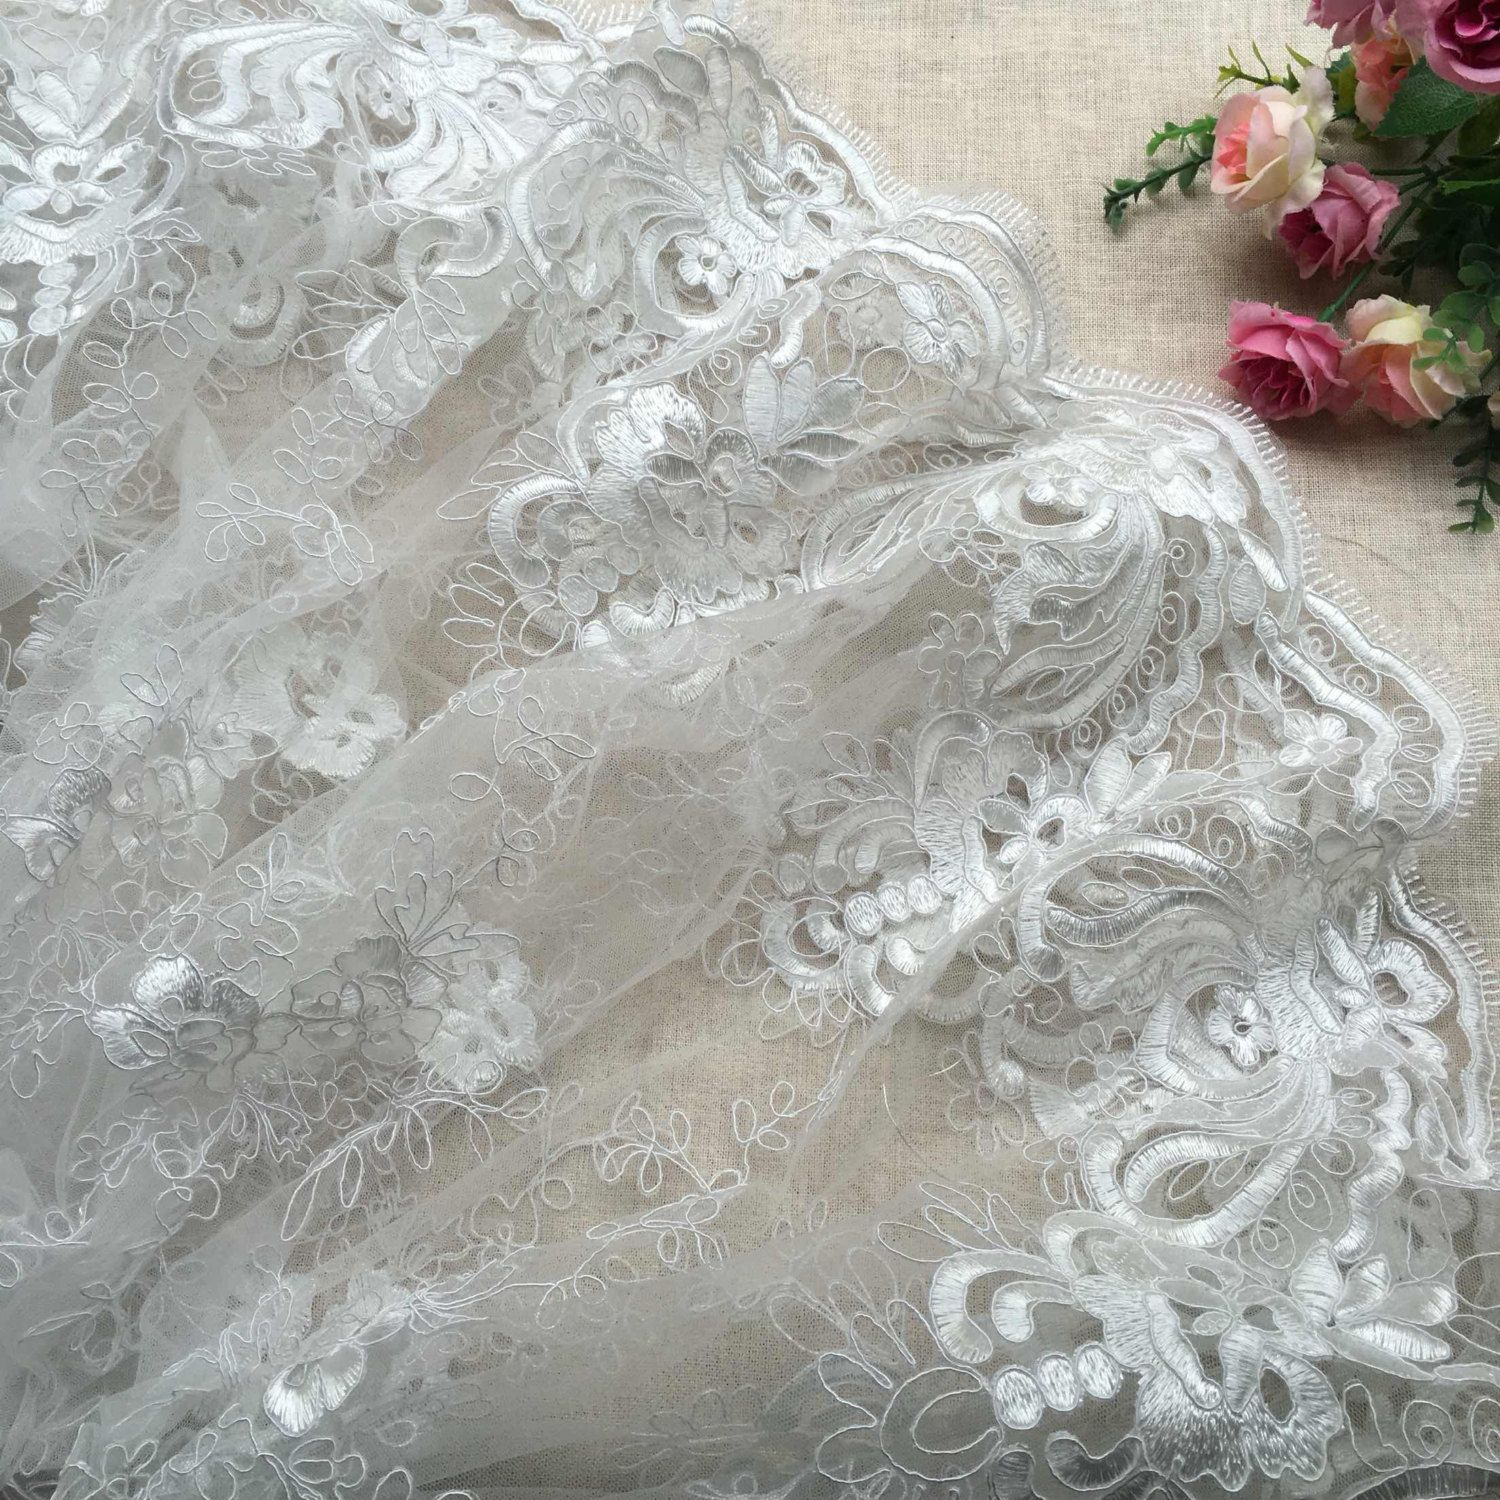 Fashion 3D Lace, Ivory Lace Fabric,embroidered Lace,guipure Lace Fabric, Wedding